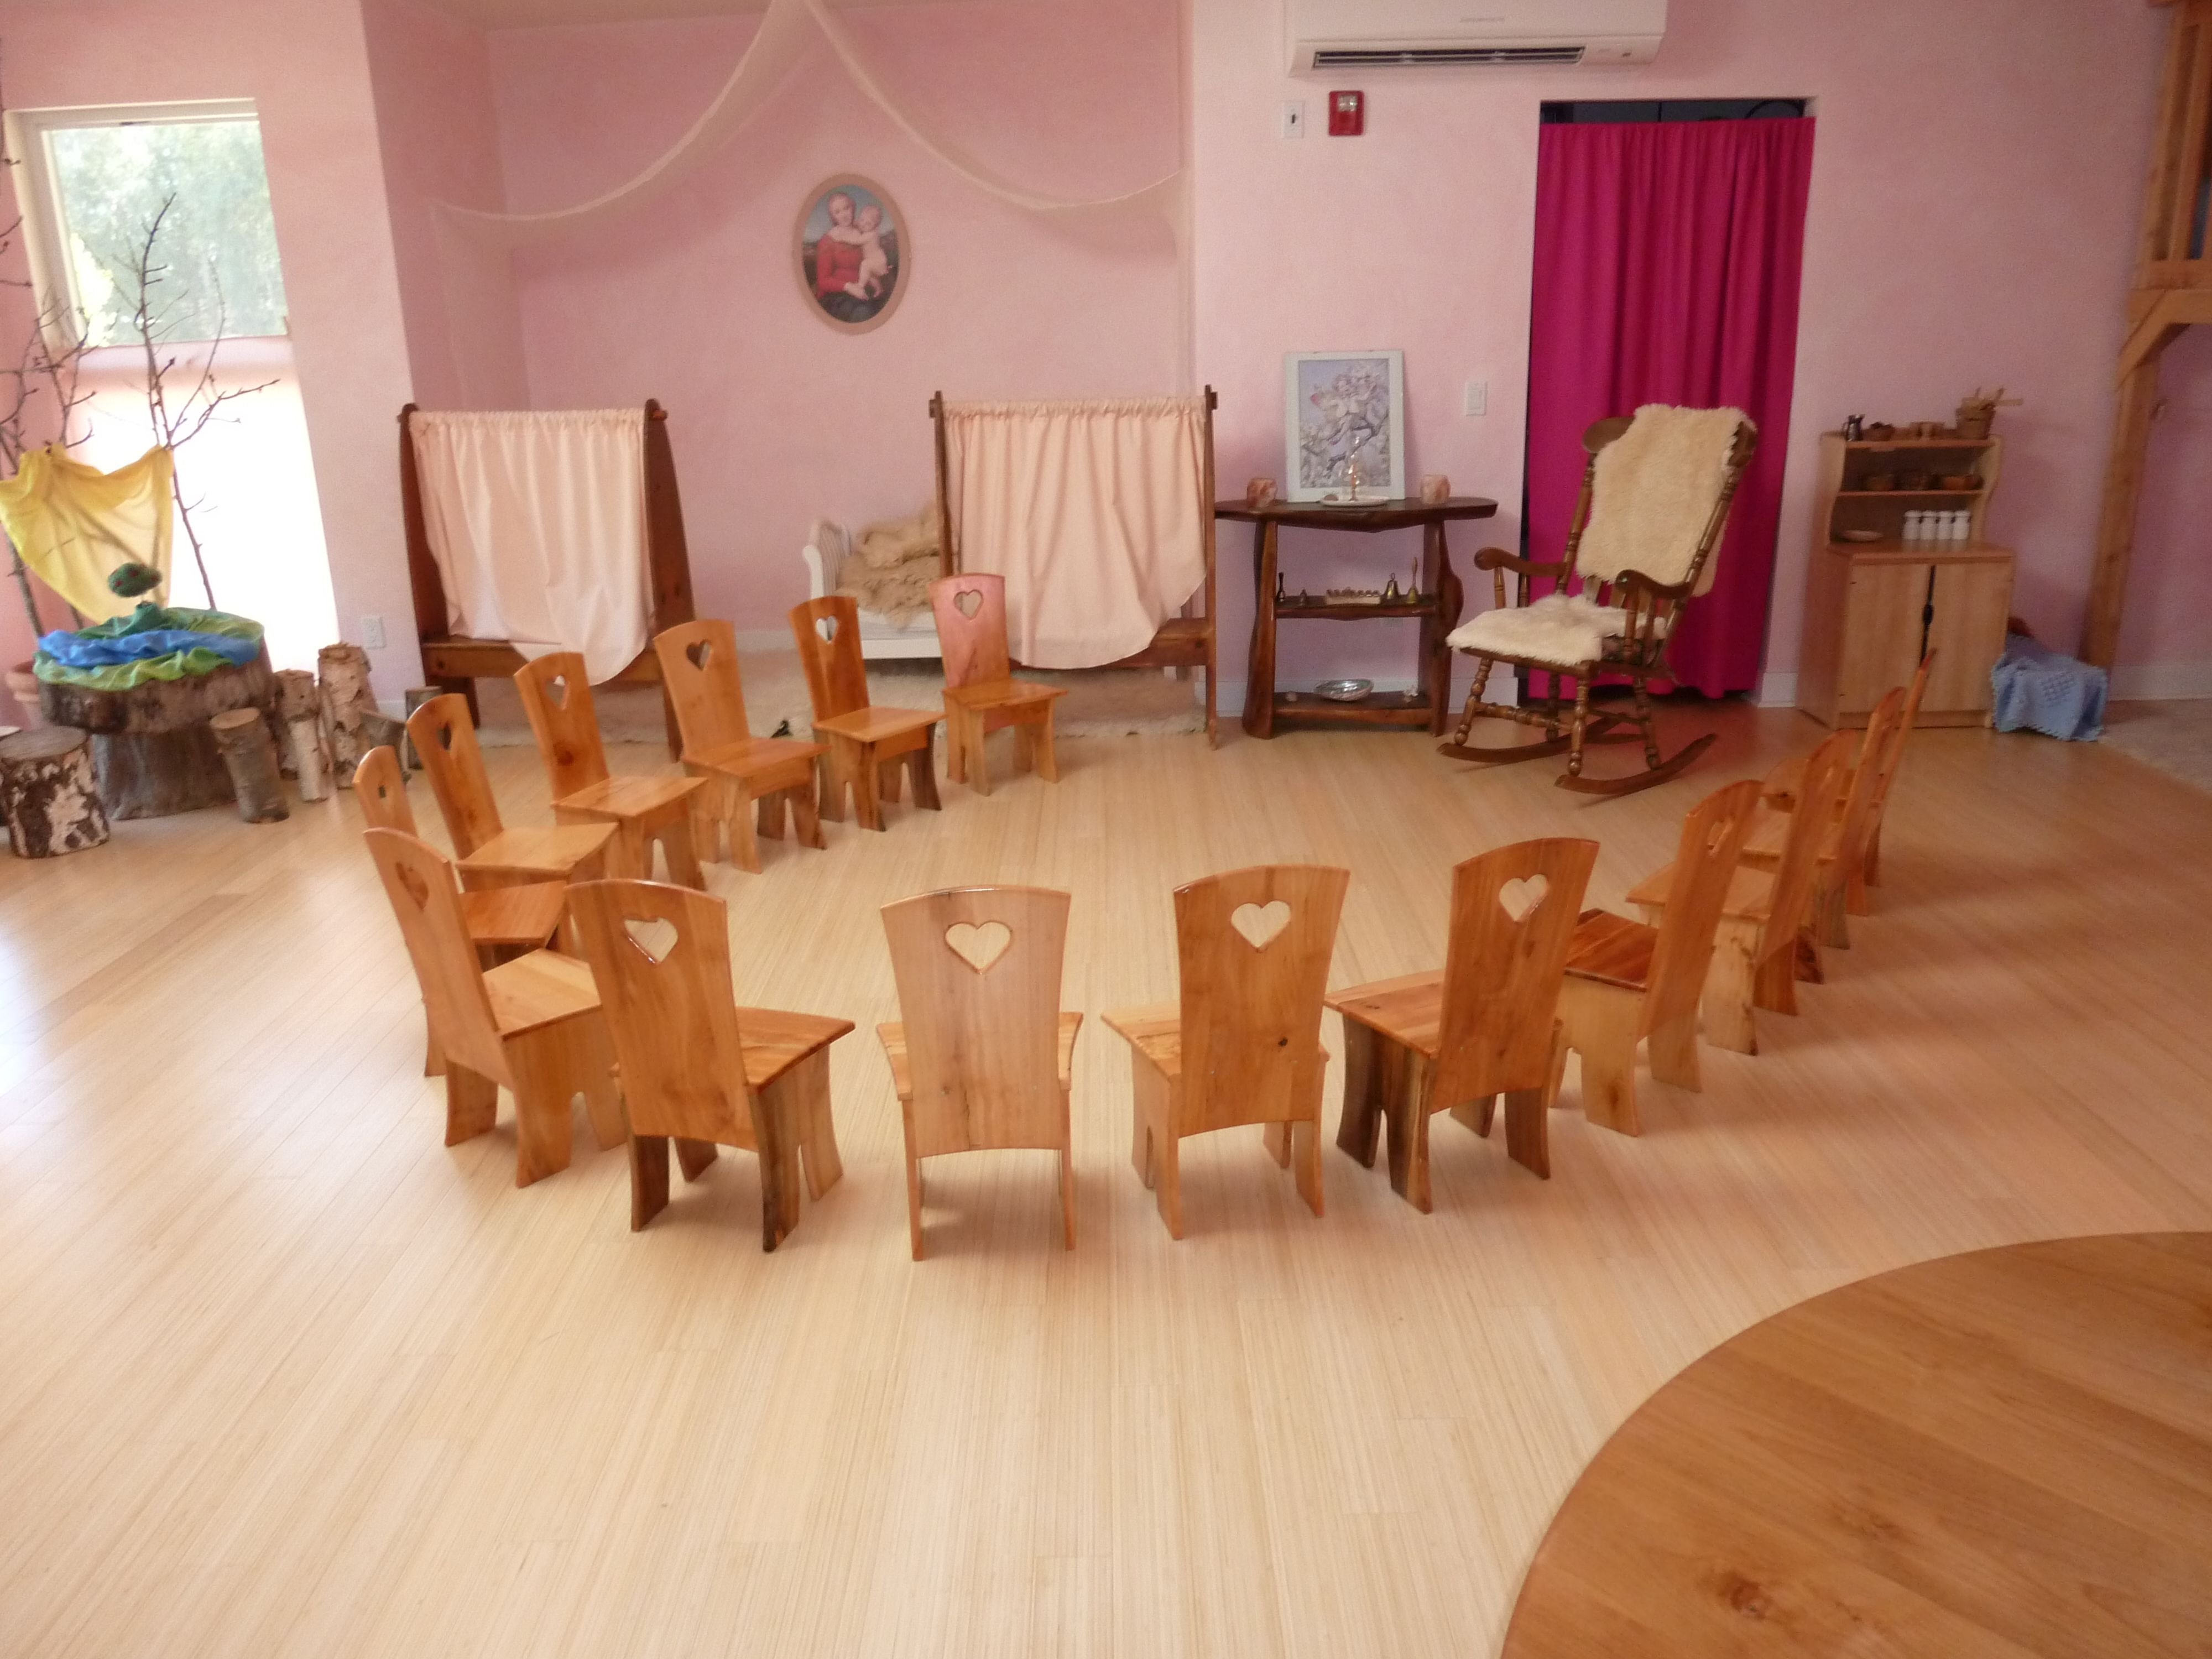 Hearts On Chairs In This Waldorf Kindergarten!